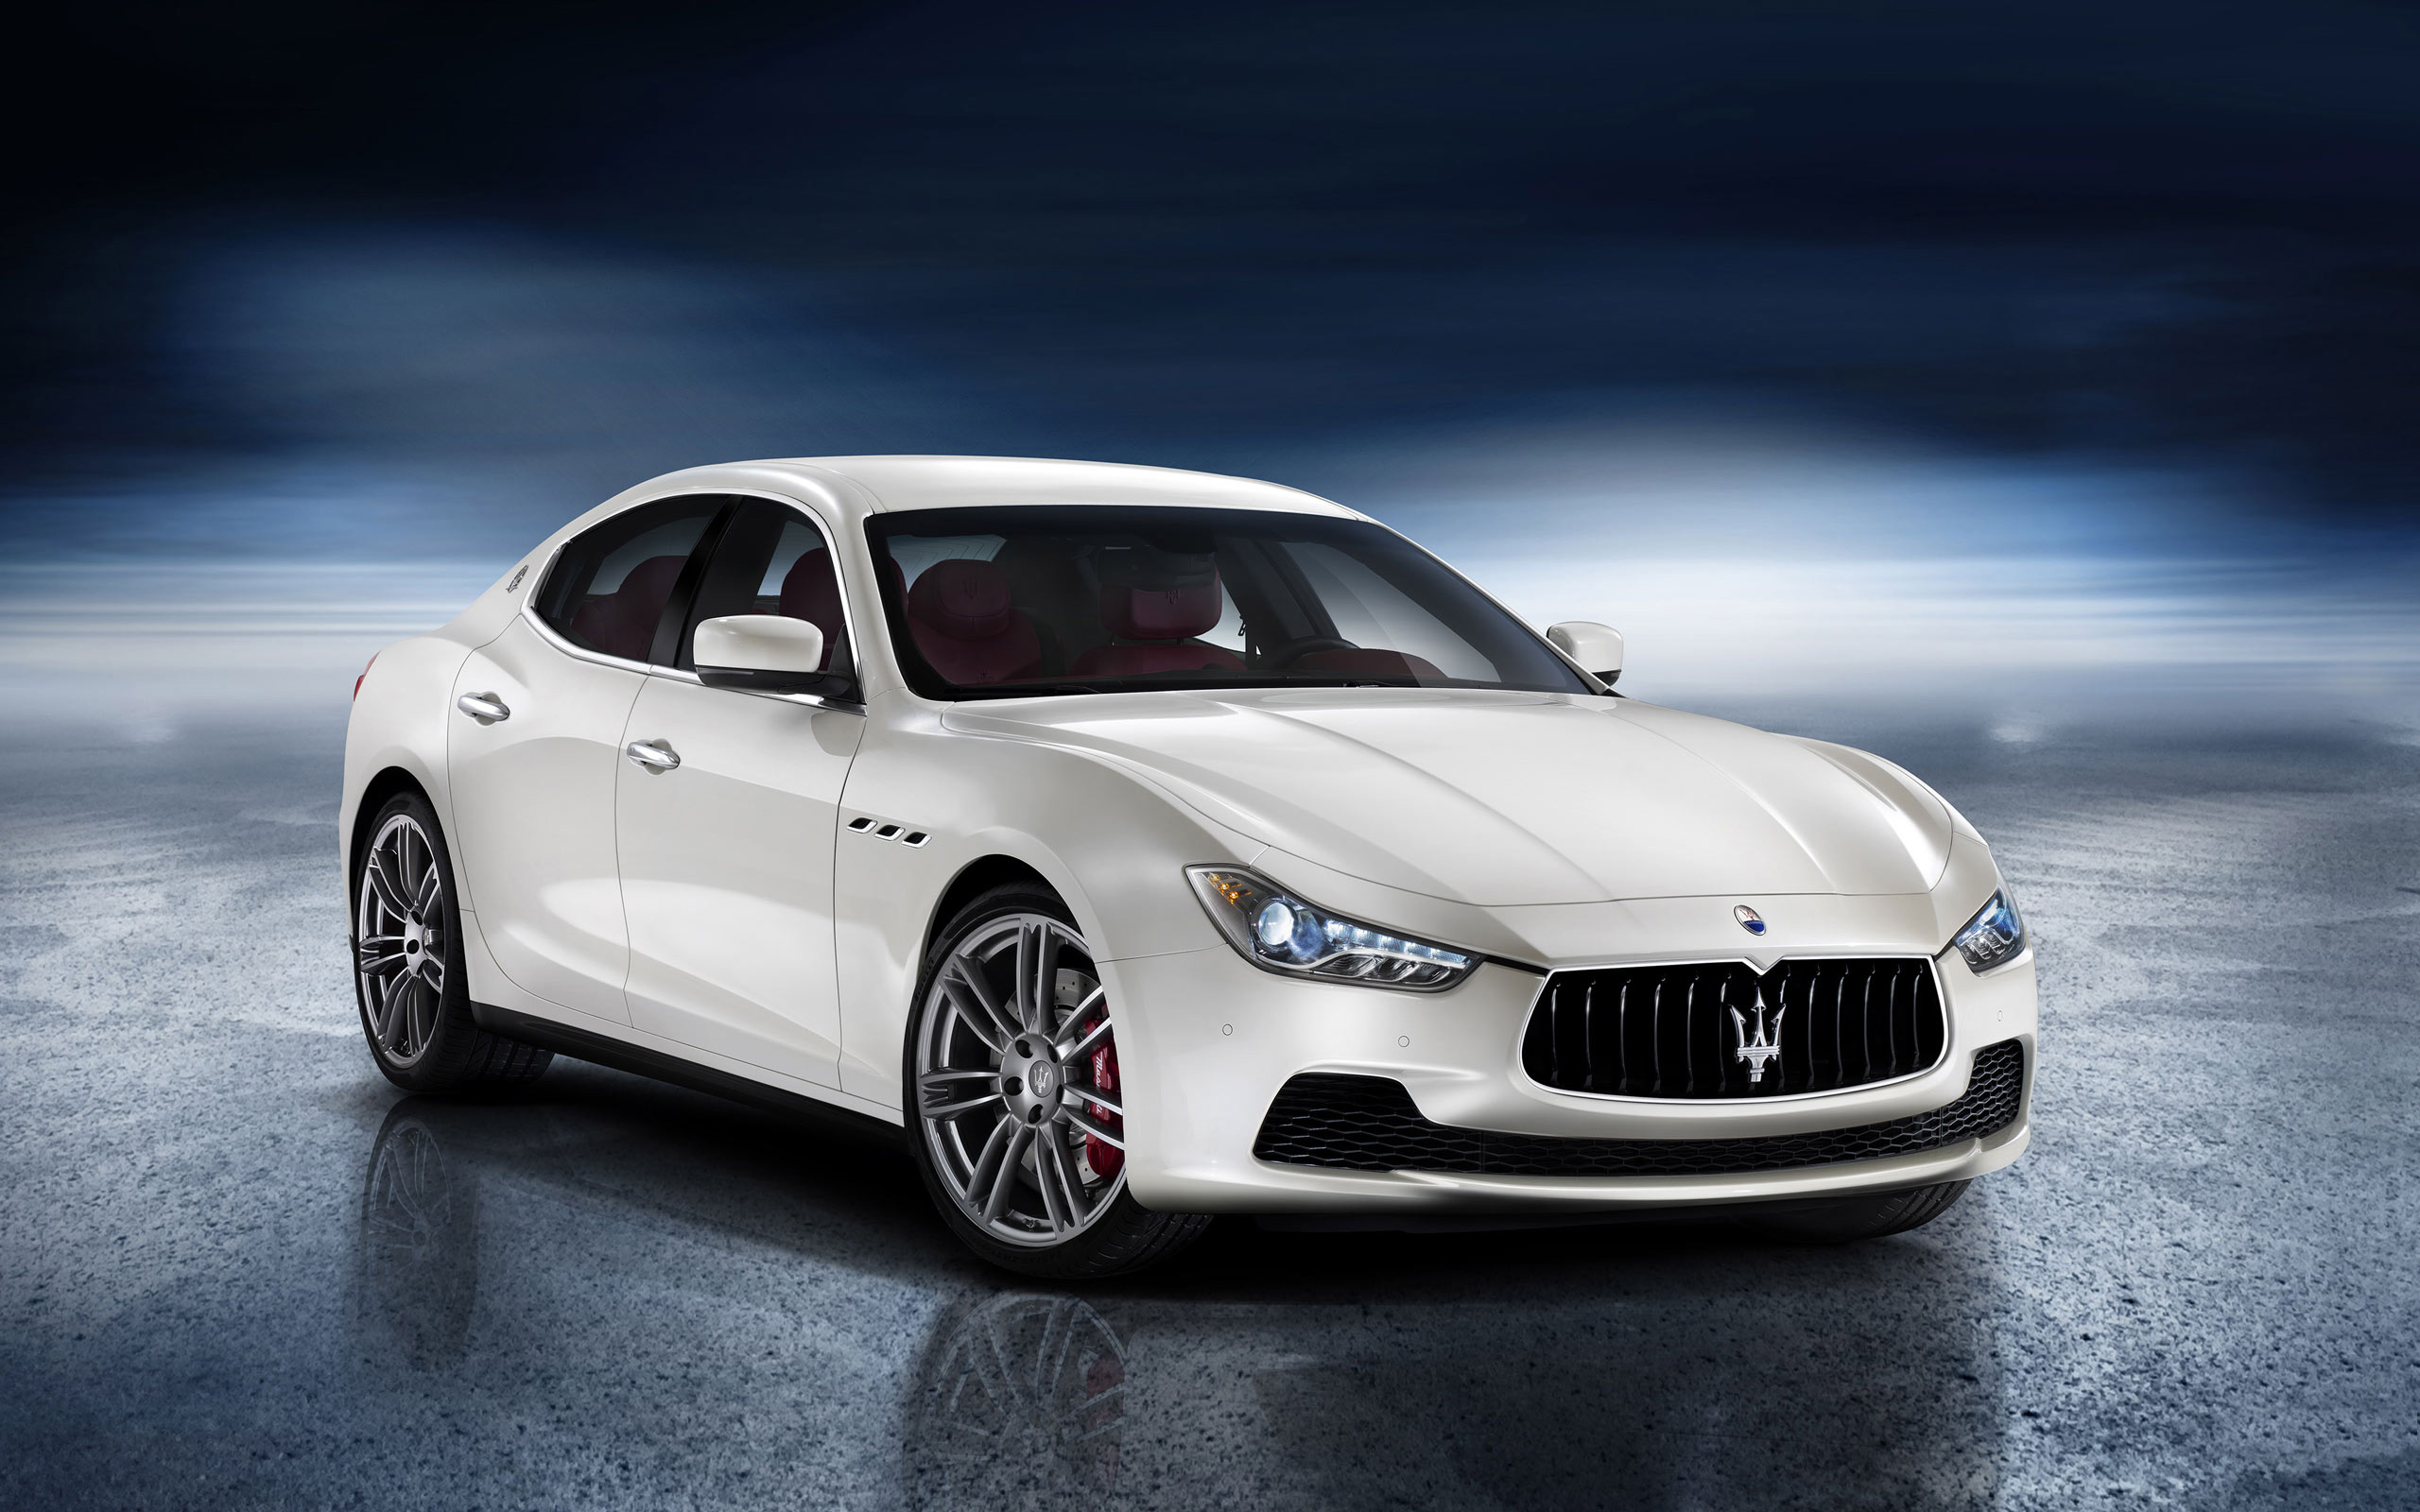 Maserati Ghibli Wallpaper HD